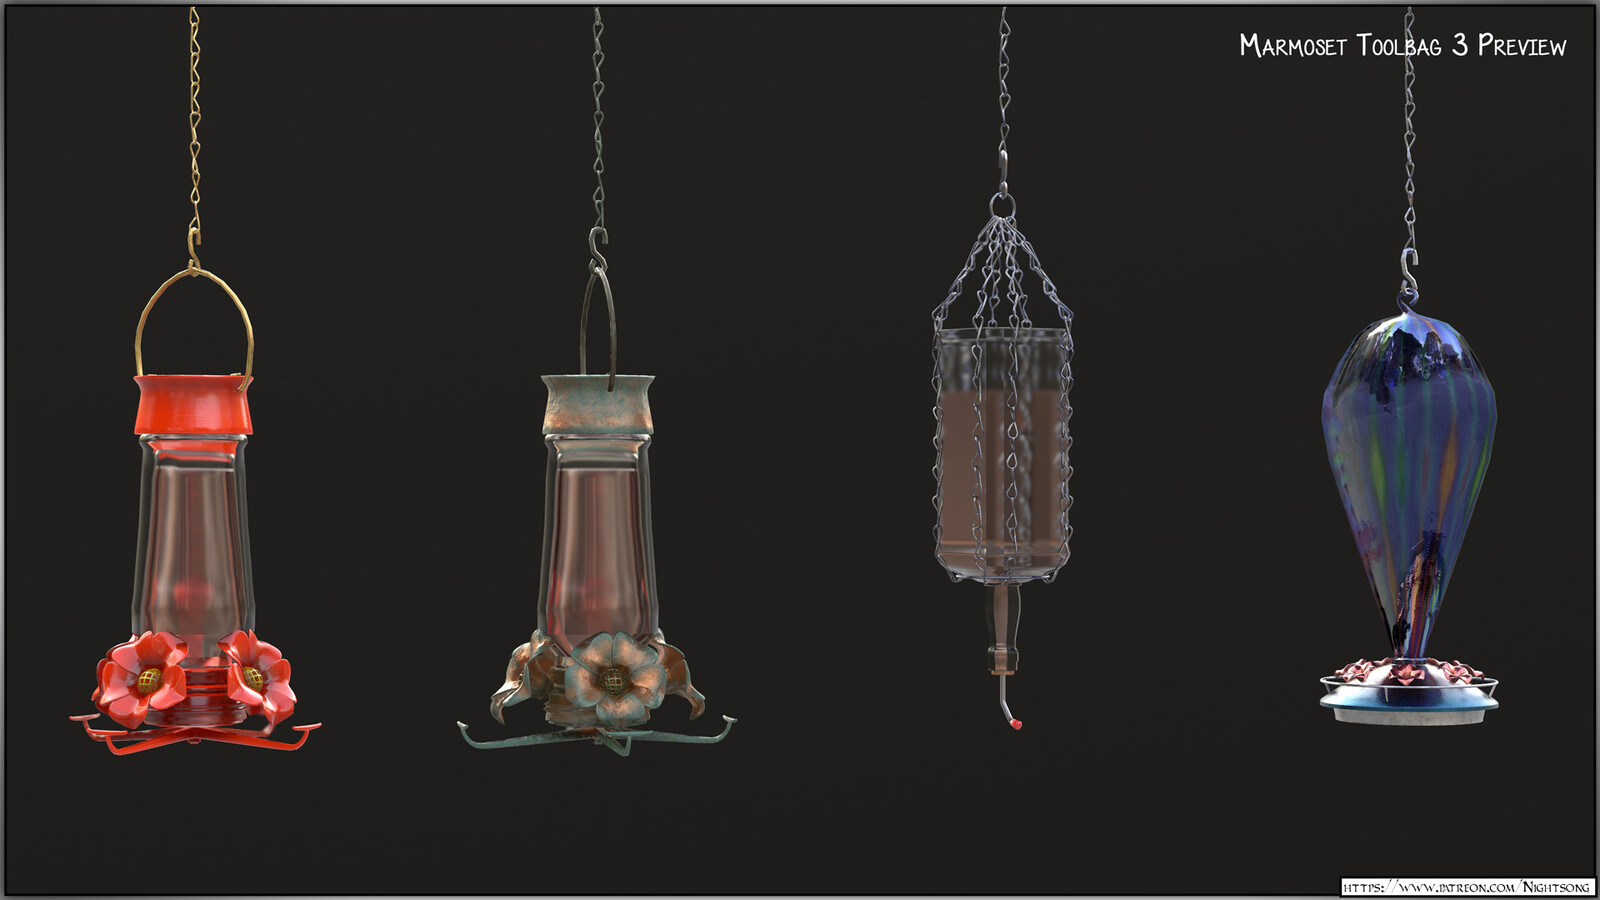 A texture preview of the hummingbird feeders in Marmoset Toolbag 3.